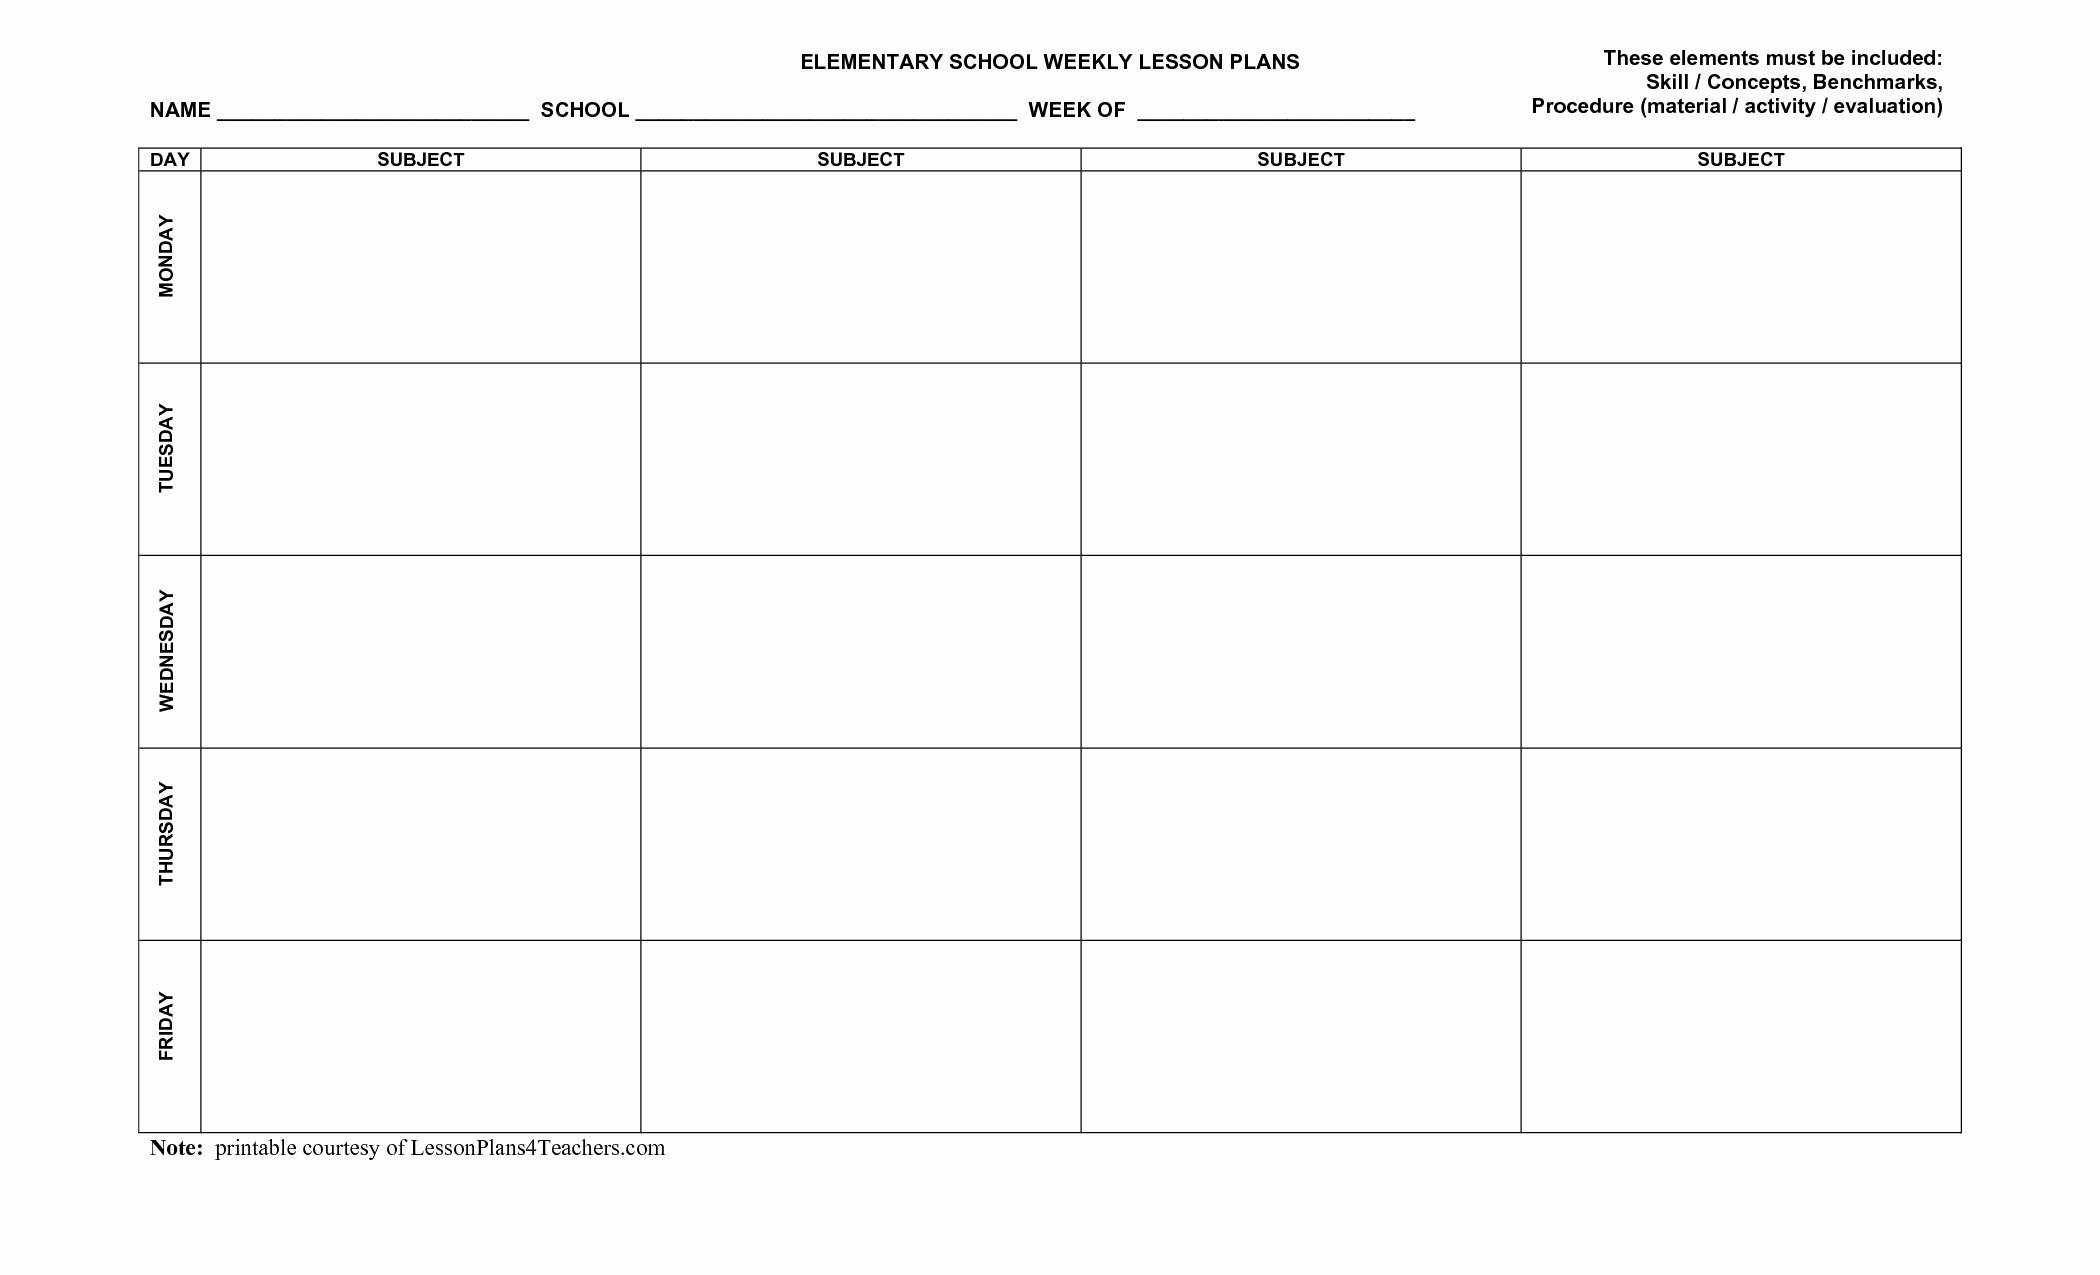 Weekly Lesson Plan Template Lovely Blank Weekly Lesson Plan Templates Mqfotfas